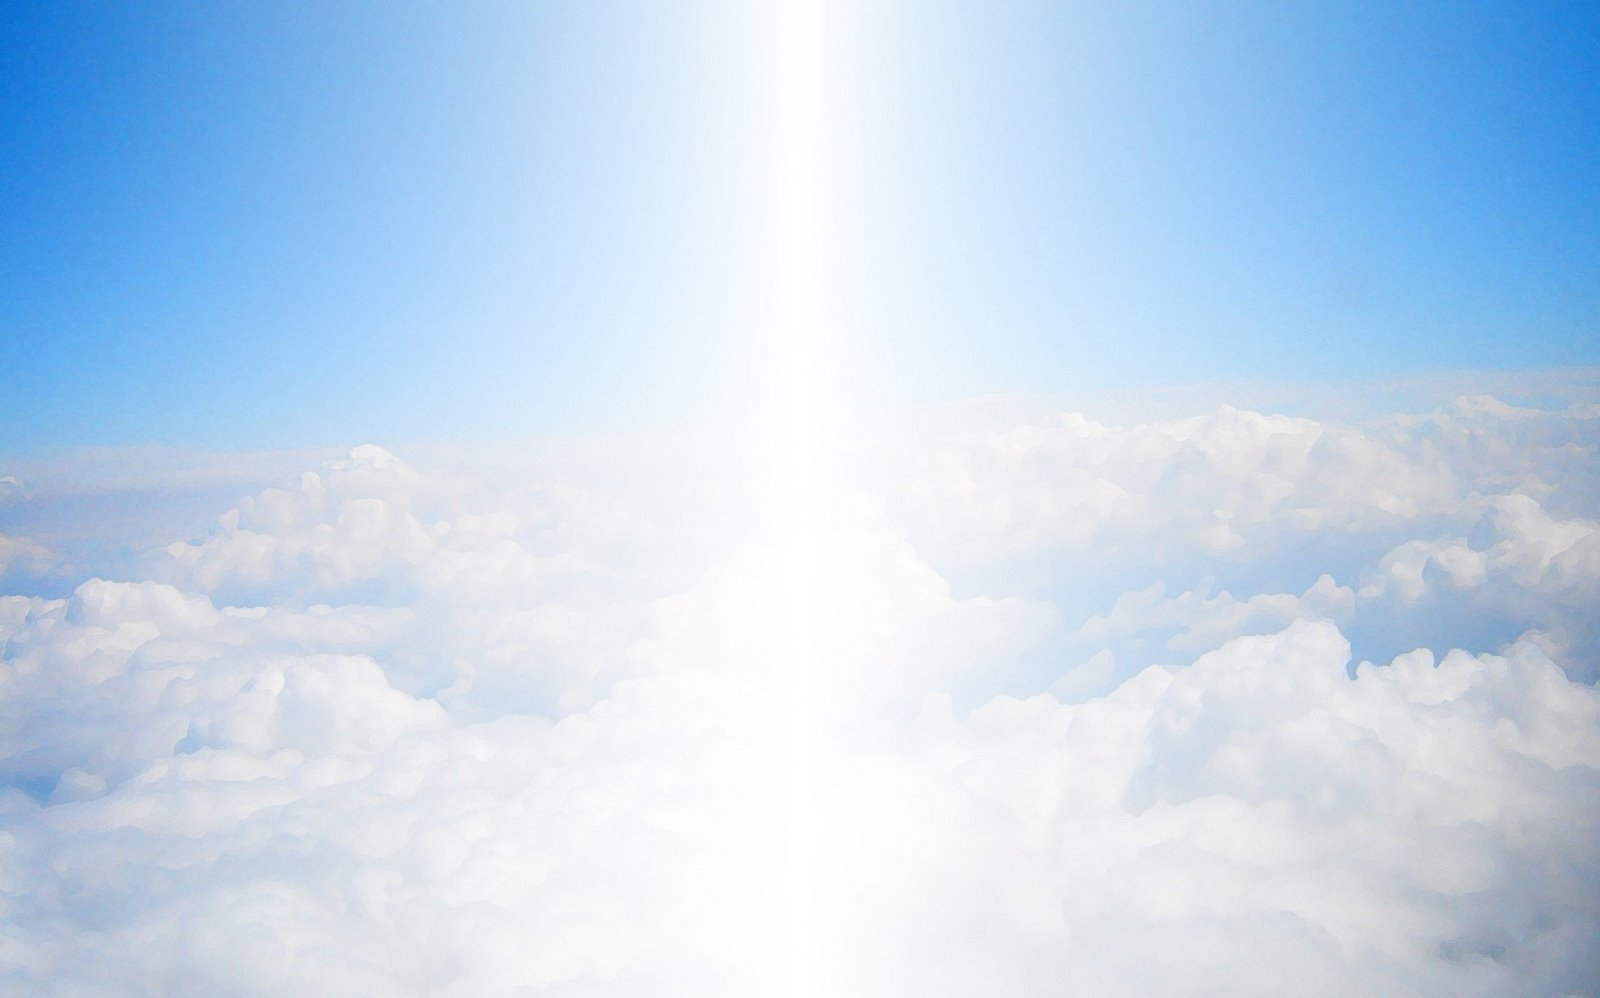 Click on the clouds to learn about Angels...